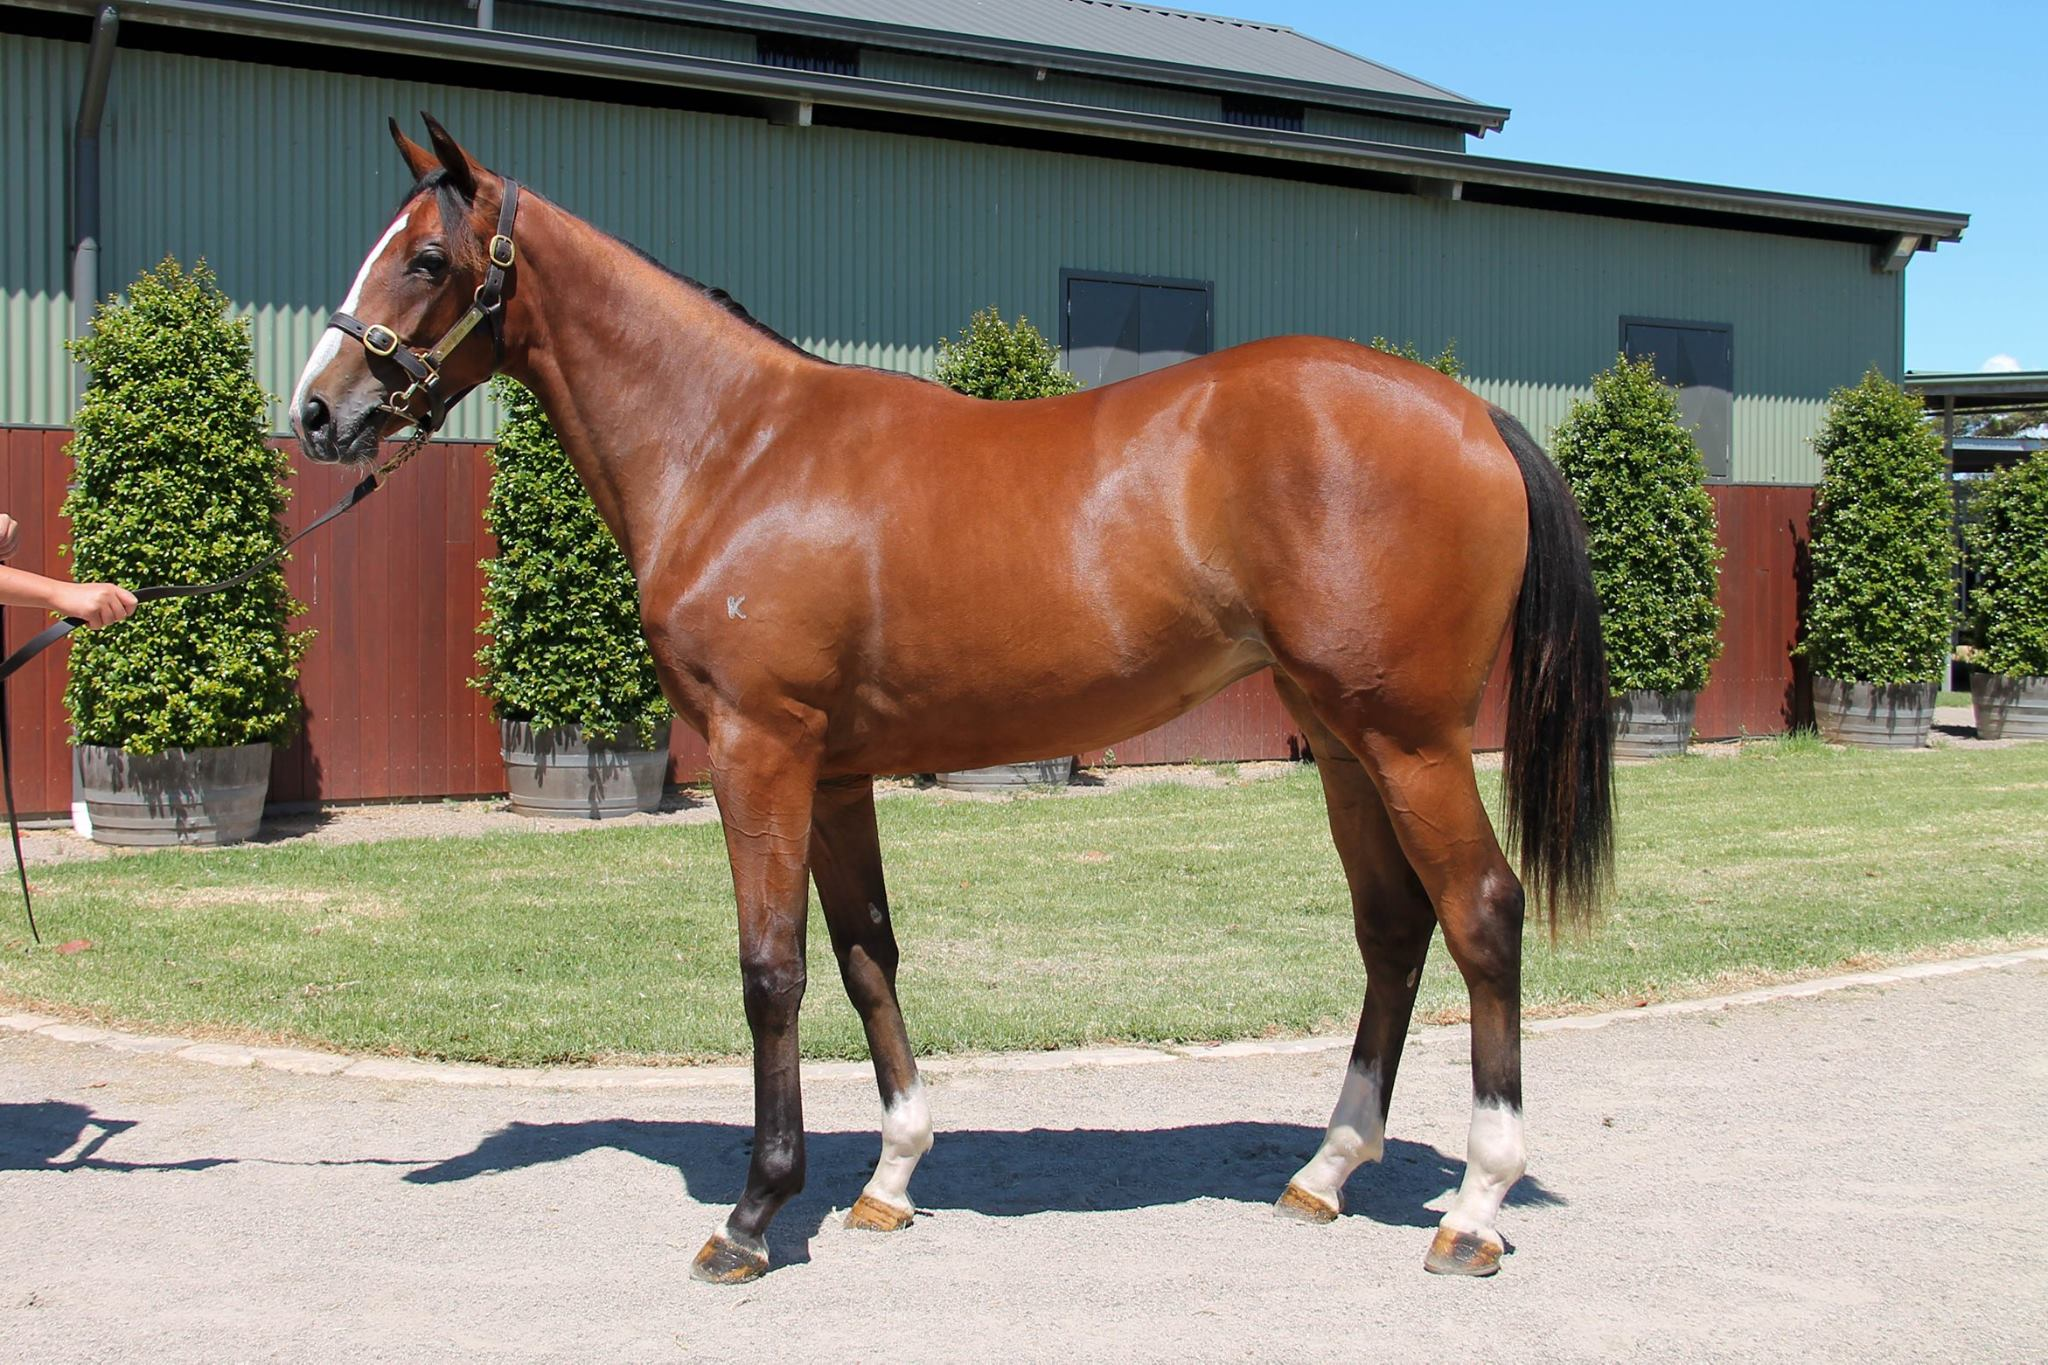 LOT 780  SIRE: Olympic Glory  DAM: Miss Diagnosis  Bay Filly  PURCHASER: Paul Moroney Bloodstock VIC  PRICE: $38,000.00